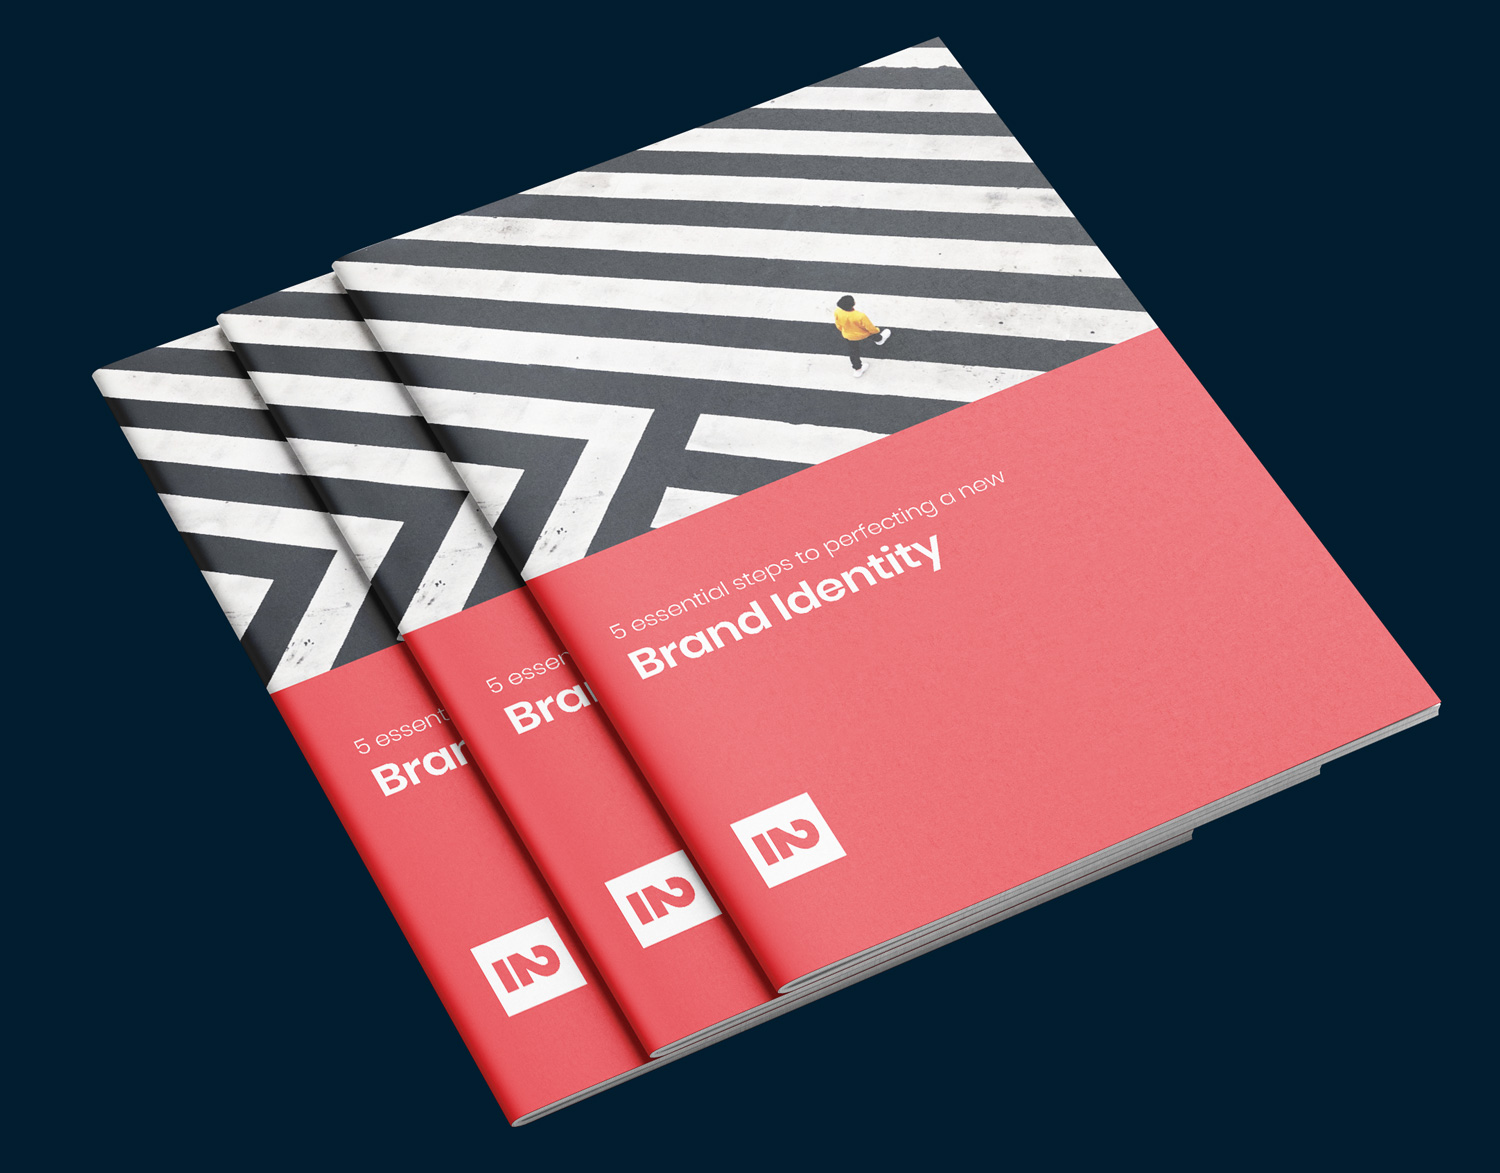 intwo free brand identity guide